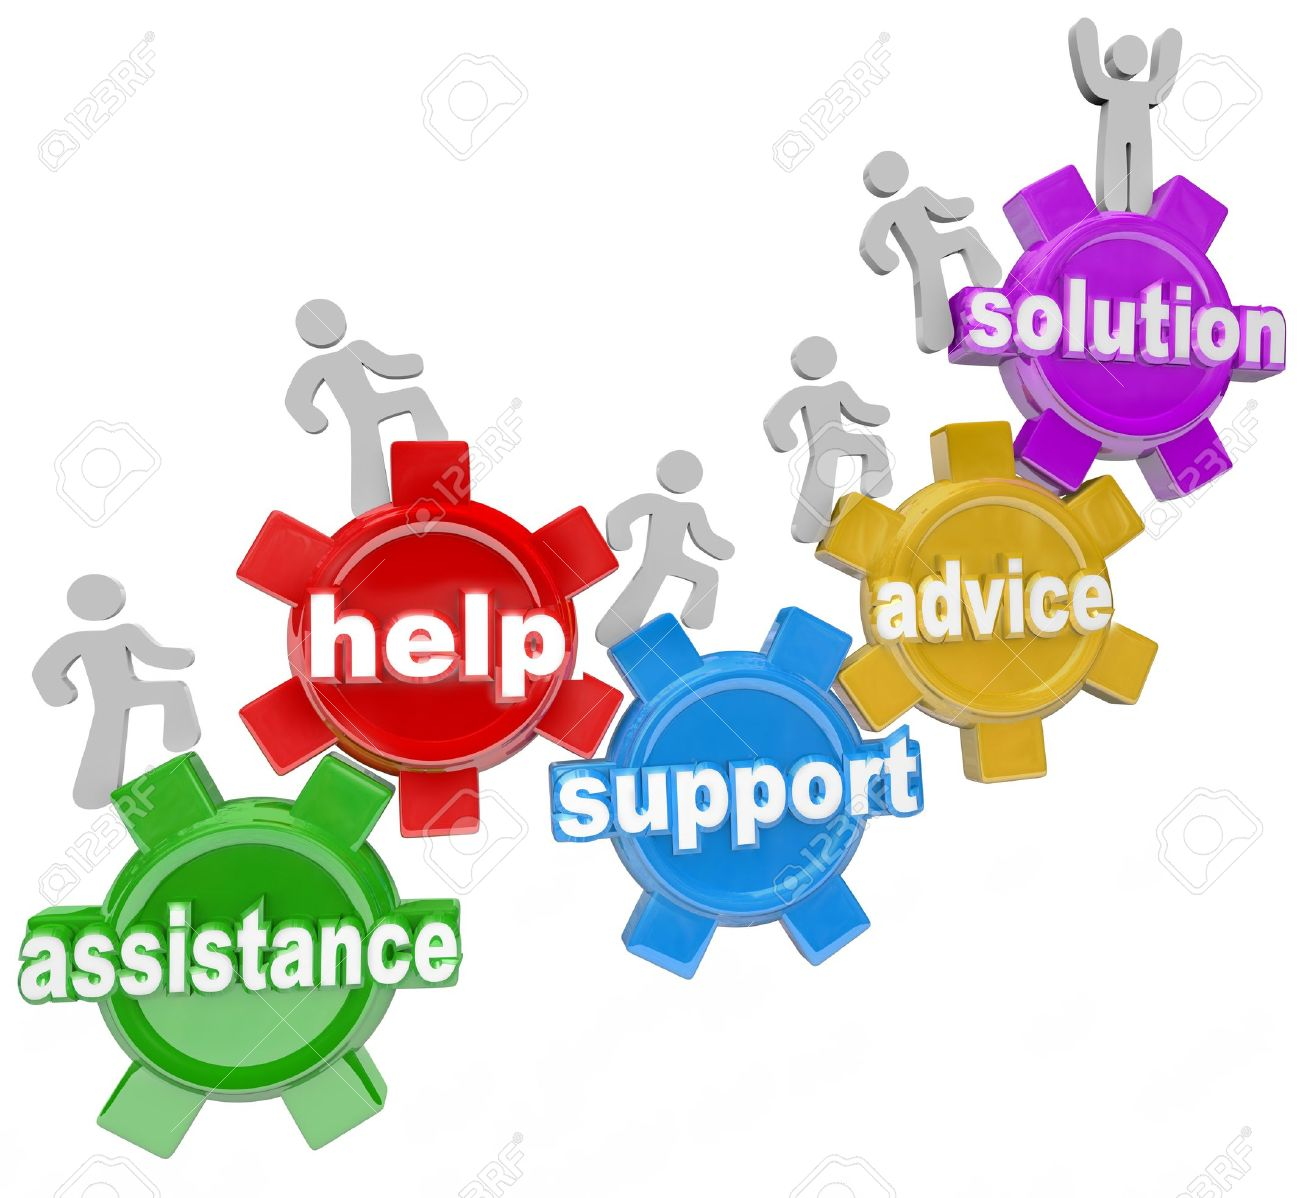 Several people rising on gears helping each other to achieve success and reach a solution through assistance, help, support and service, representing teamwork needed to achieve a goal Stock Photo - 13406053